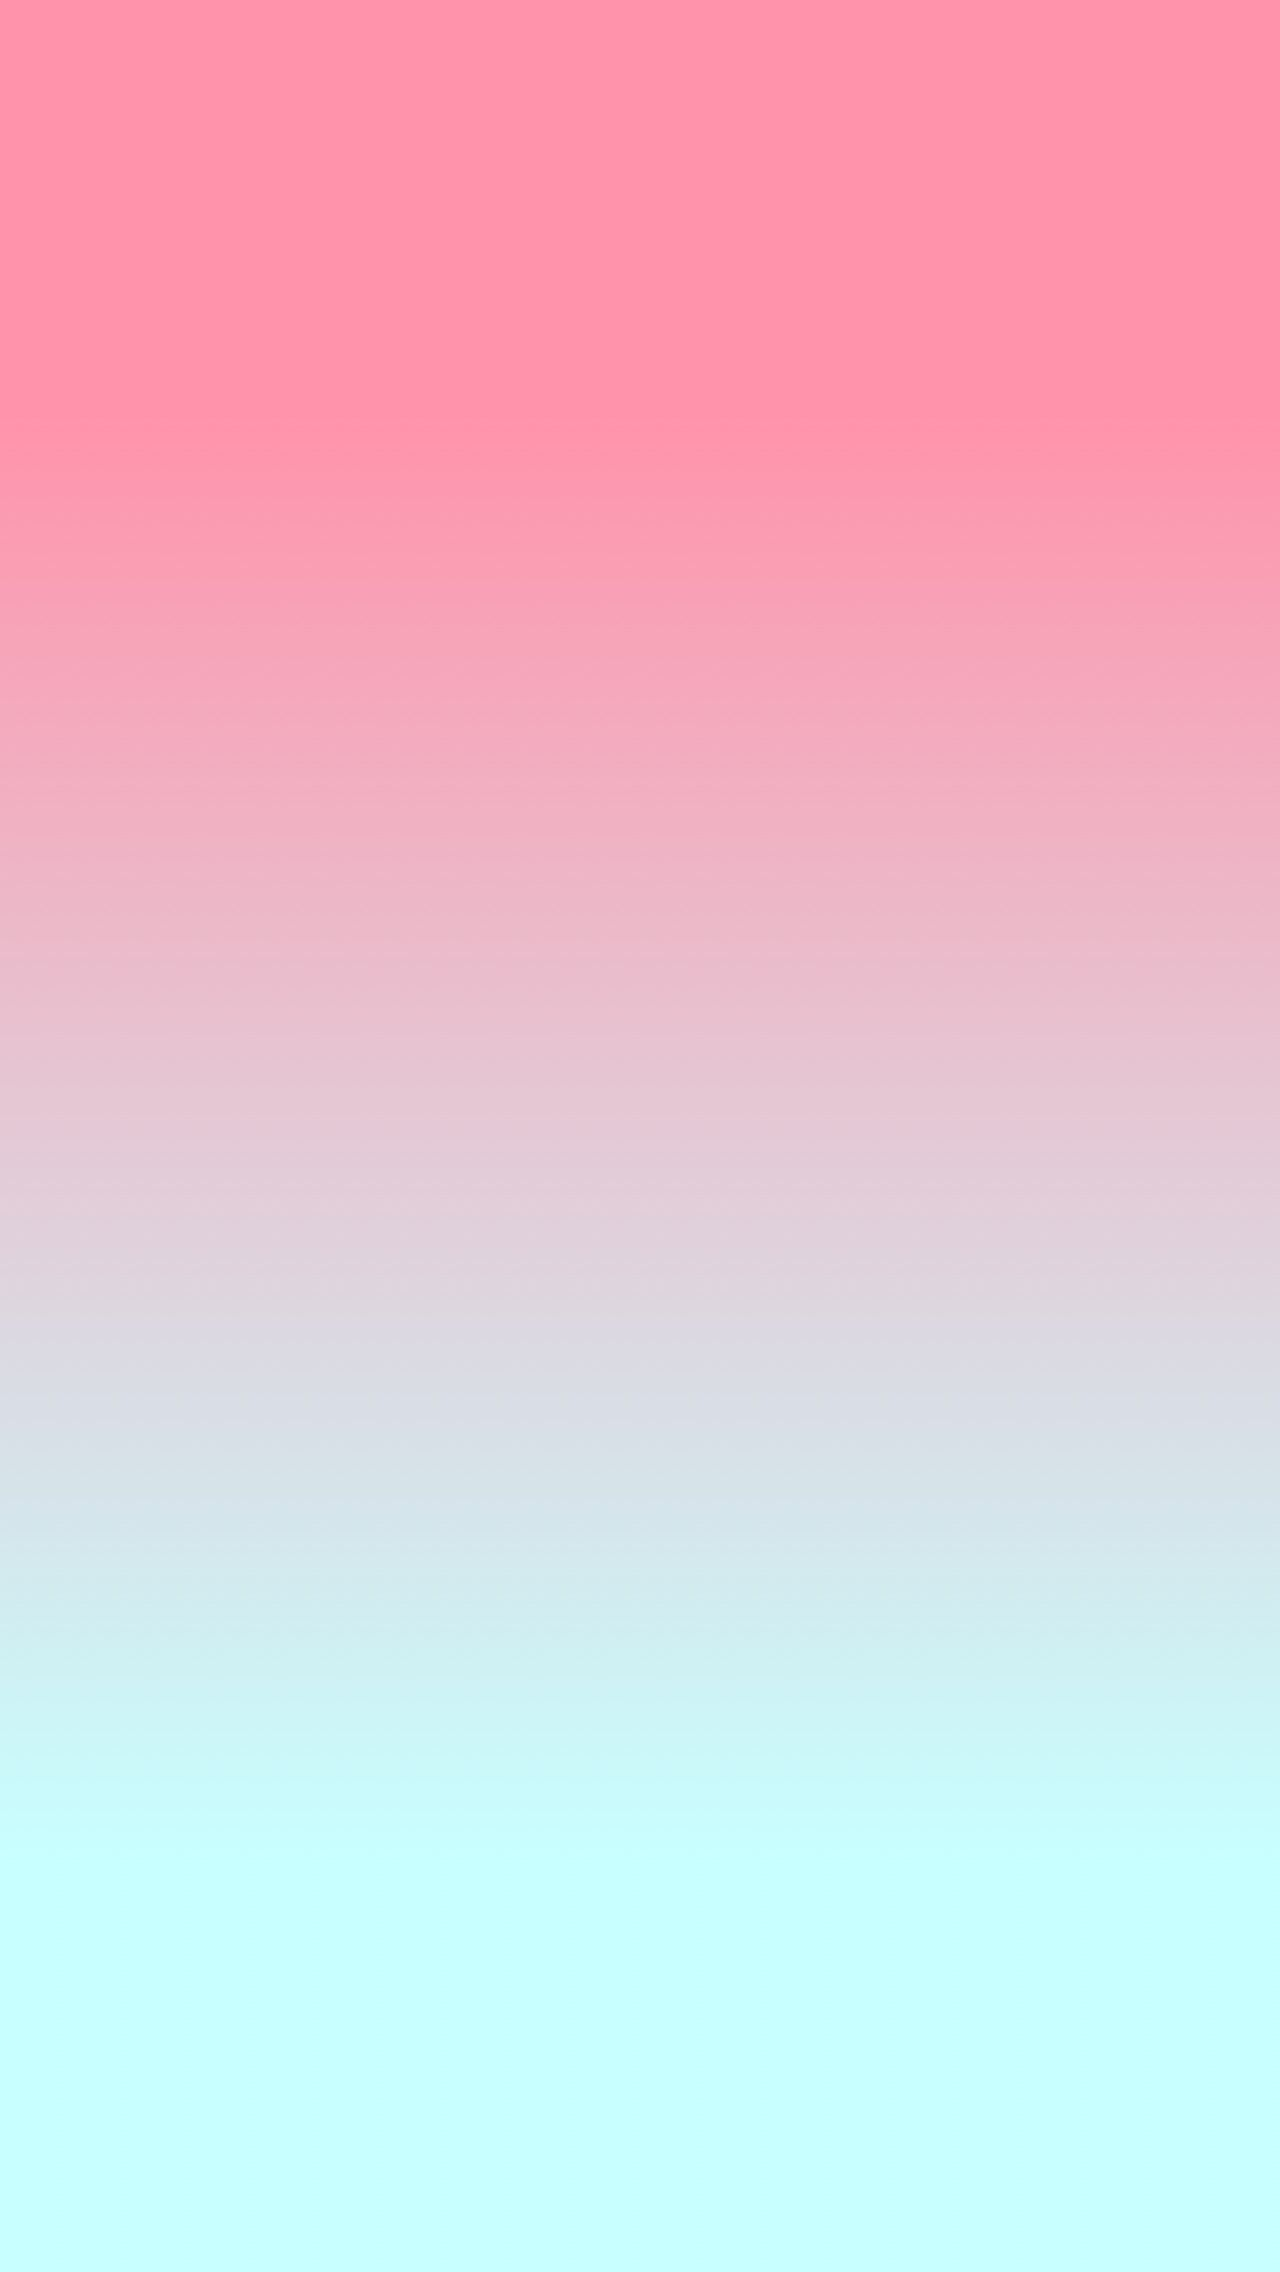 Pink And Blue Ombre Iphone Wallpaper Iphone Wallpapers Sfondi A